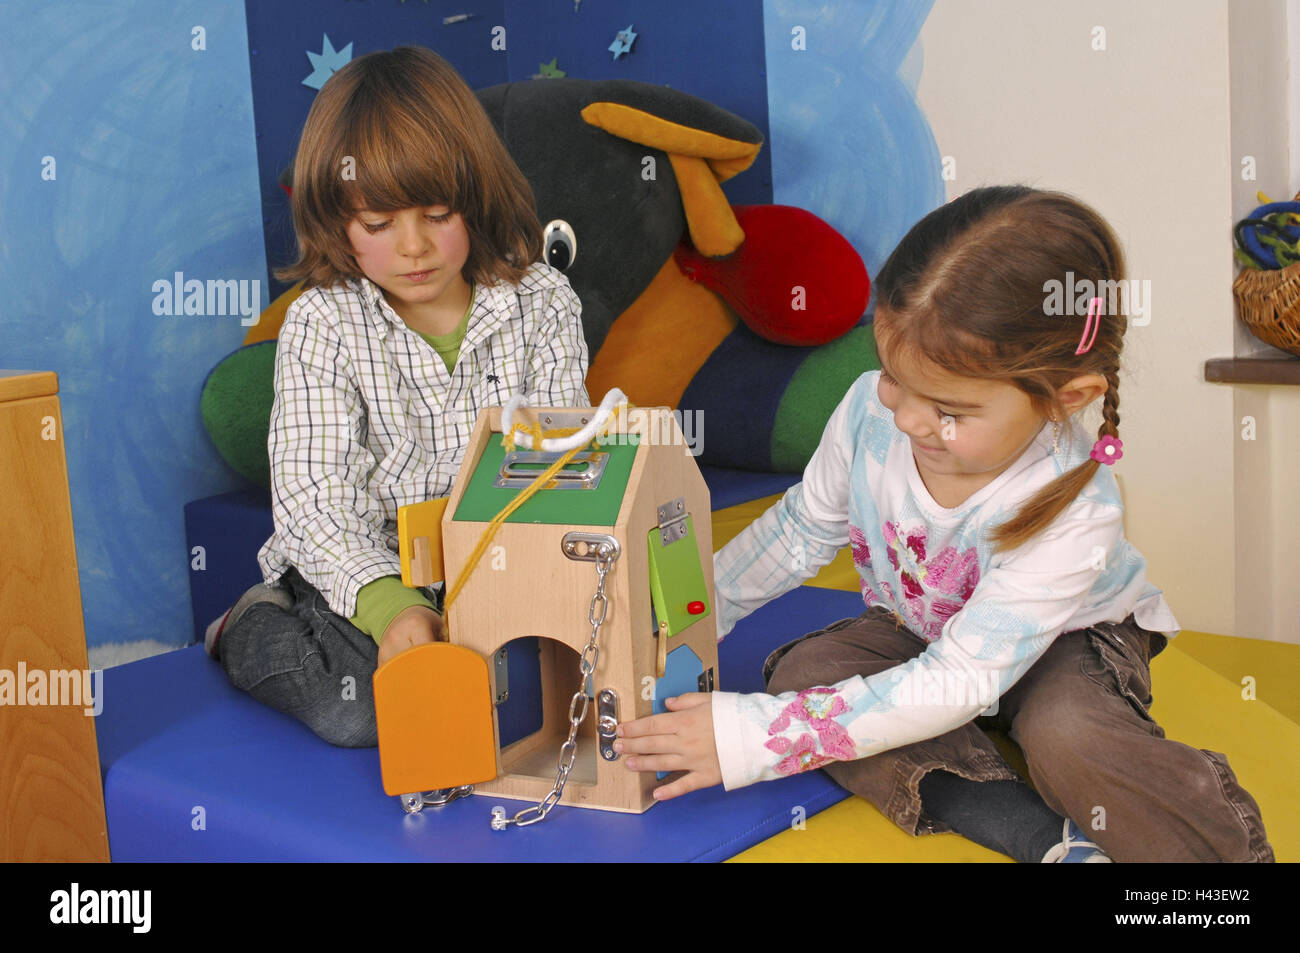 Children, two, play, learning game, kindergarten, person, girl, boy, wooden house, wooden toys, learning toys, toys, Stock Photo